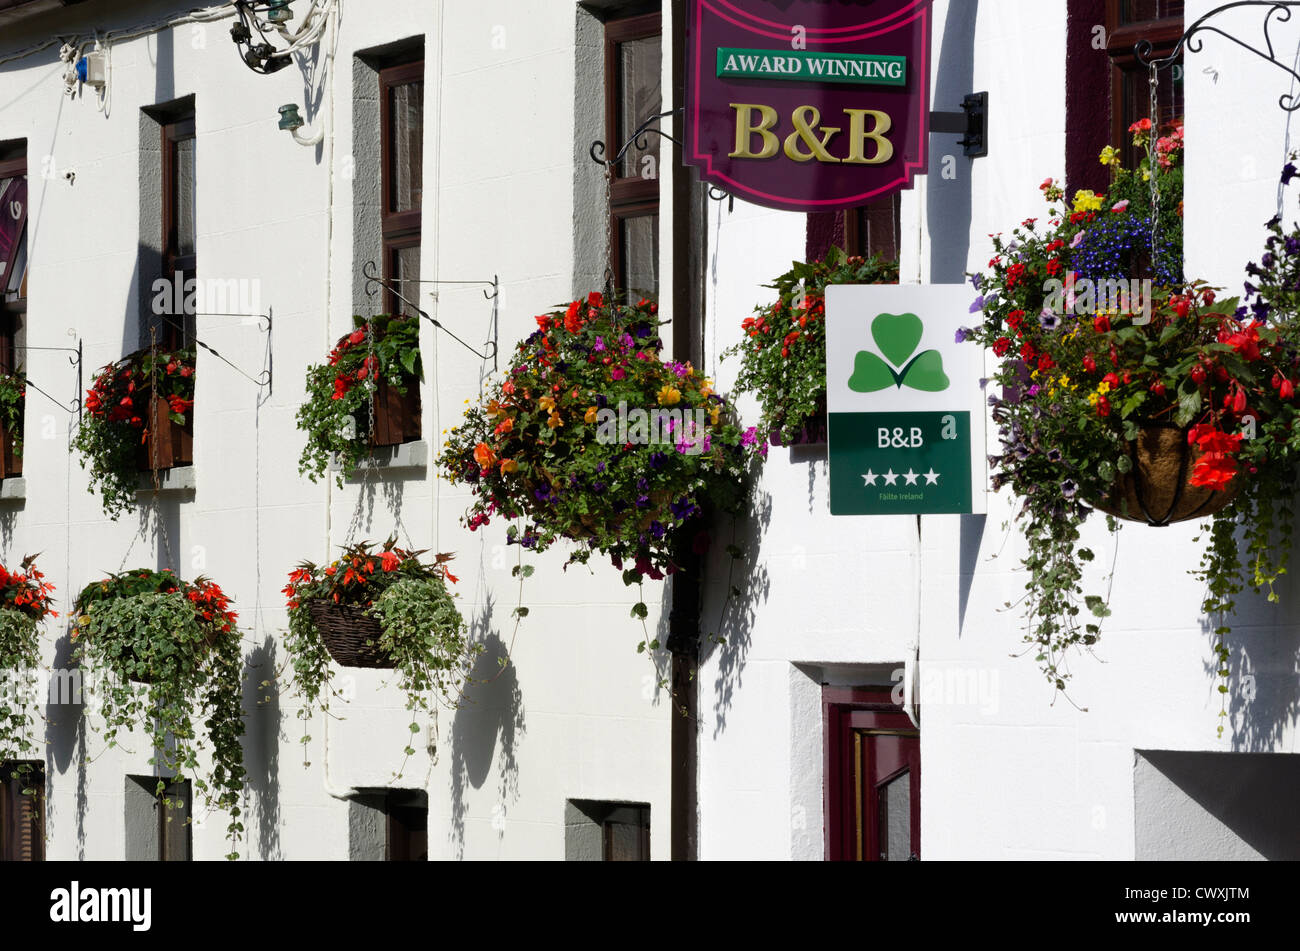 Hanging baskets outside a B&B in the Republic of Ireland - Stock Image